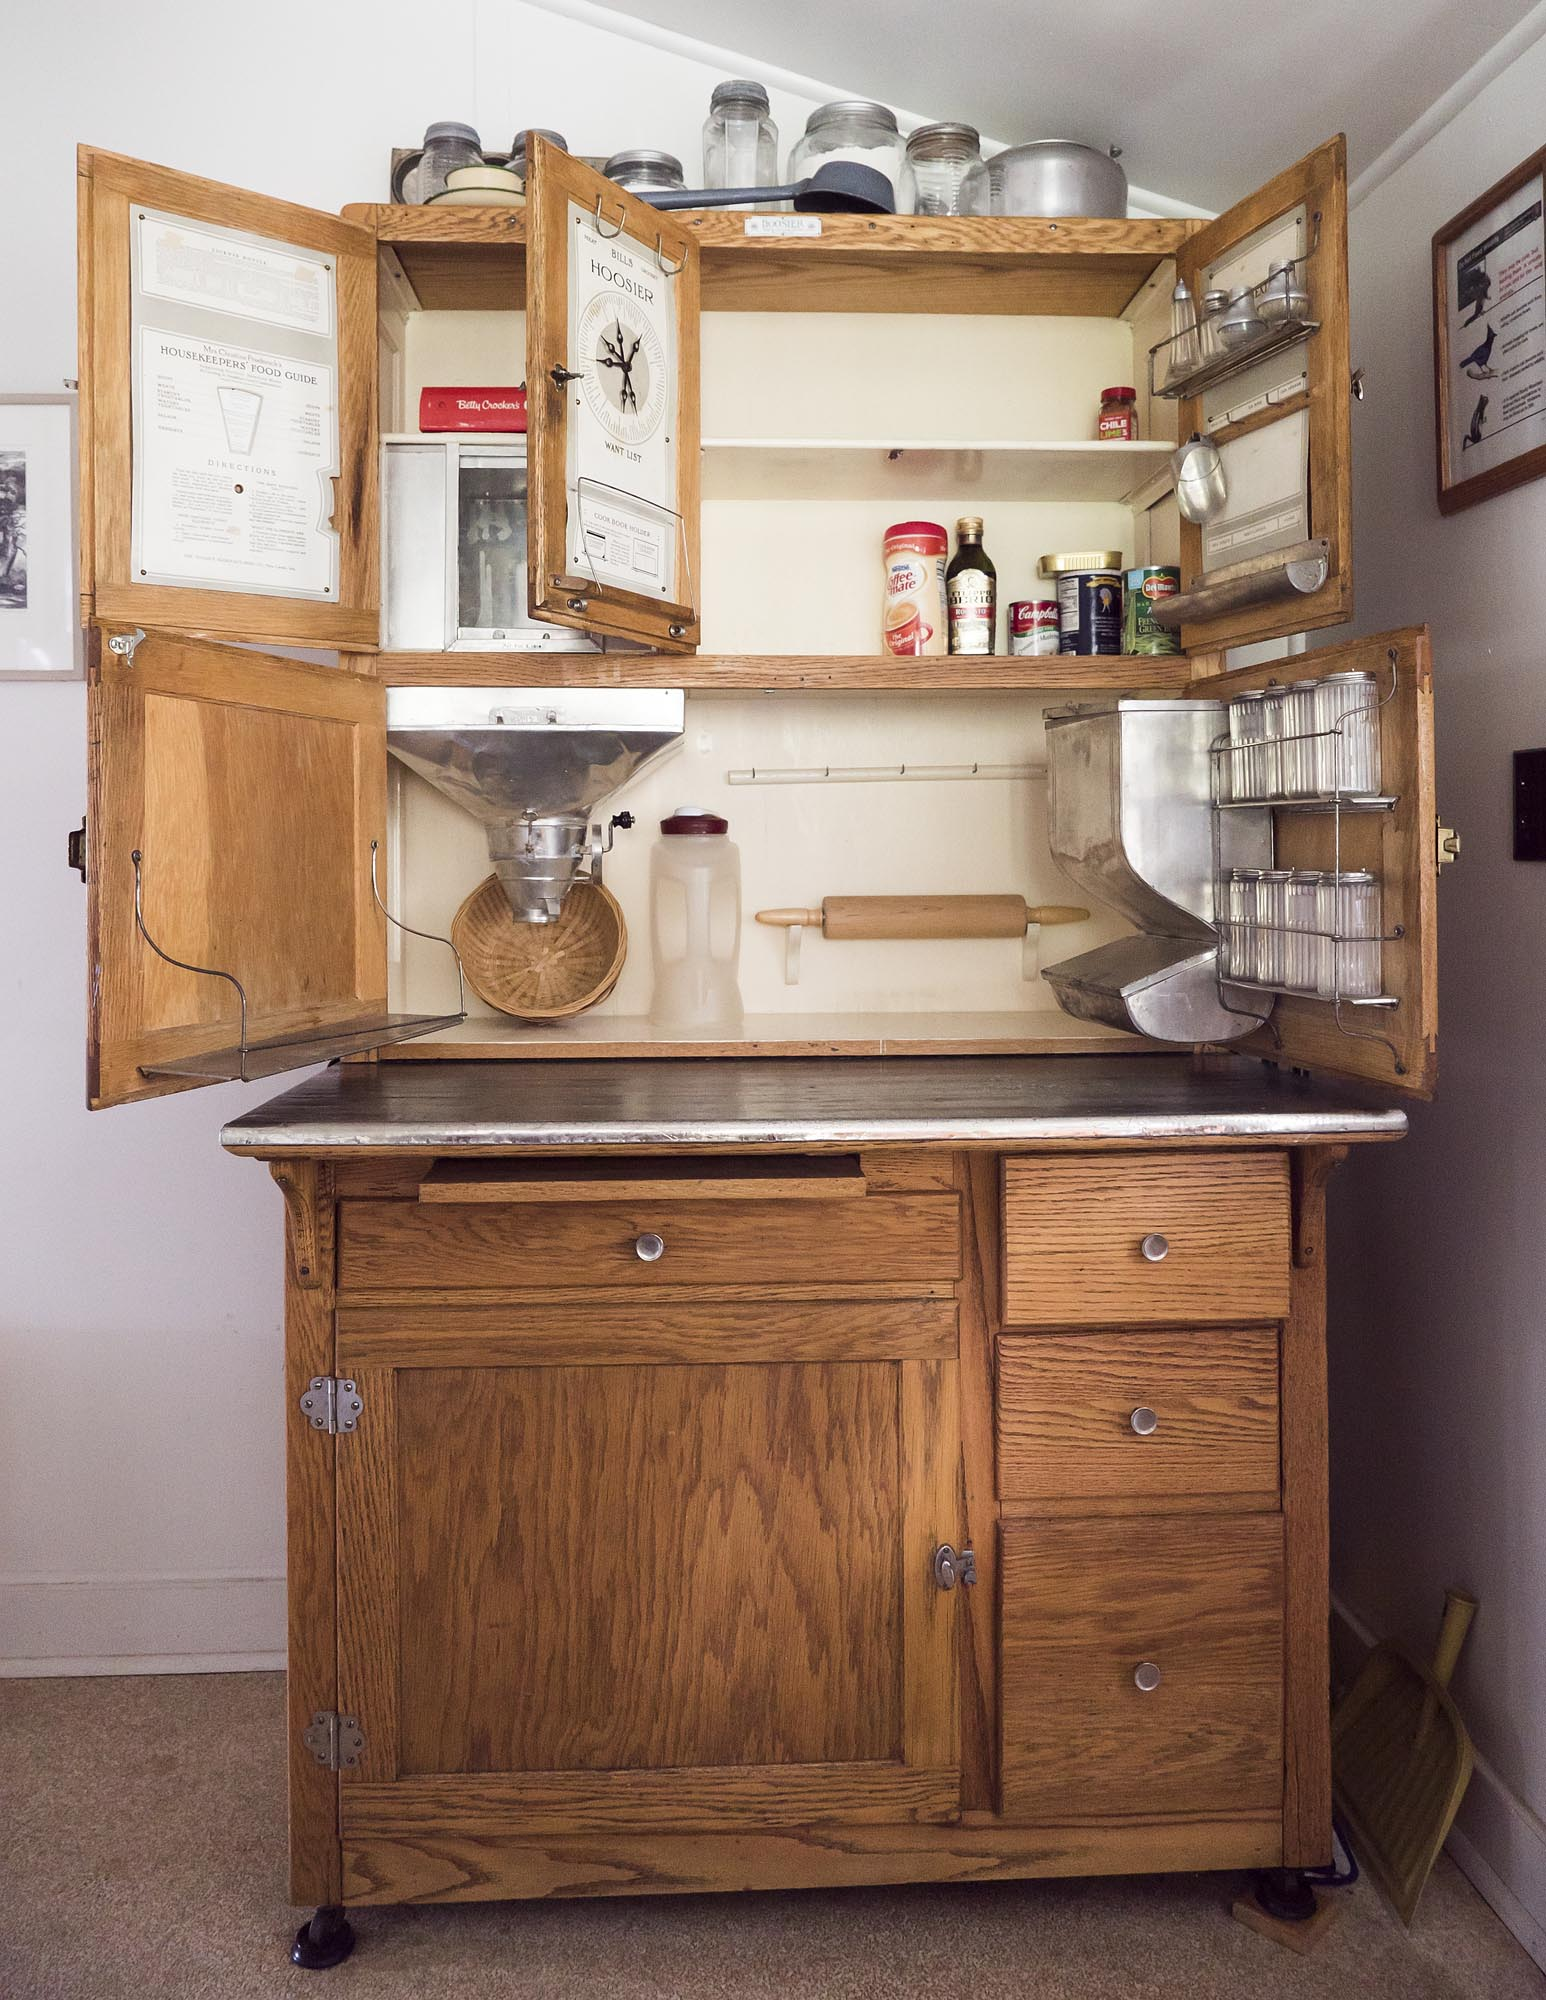 The Hoosier Kitchen Cabinet With Door Open